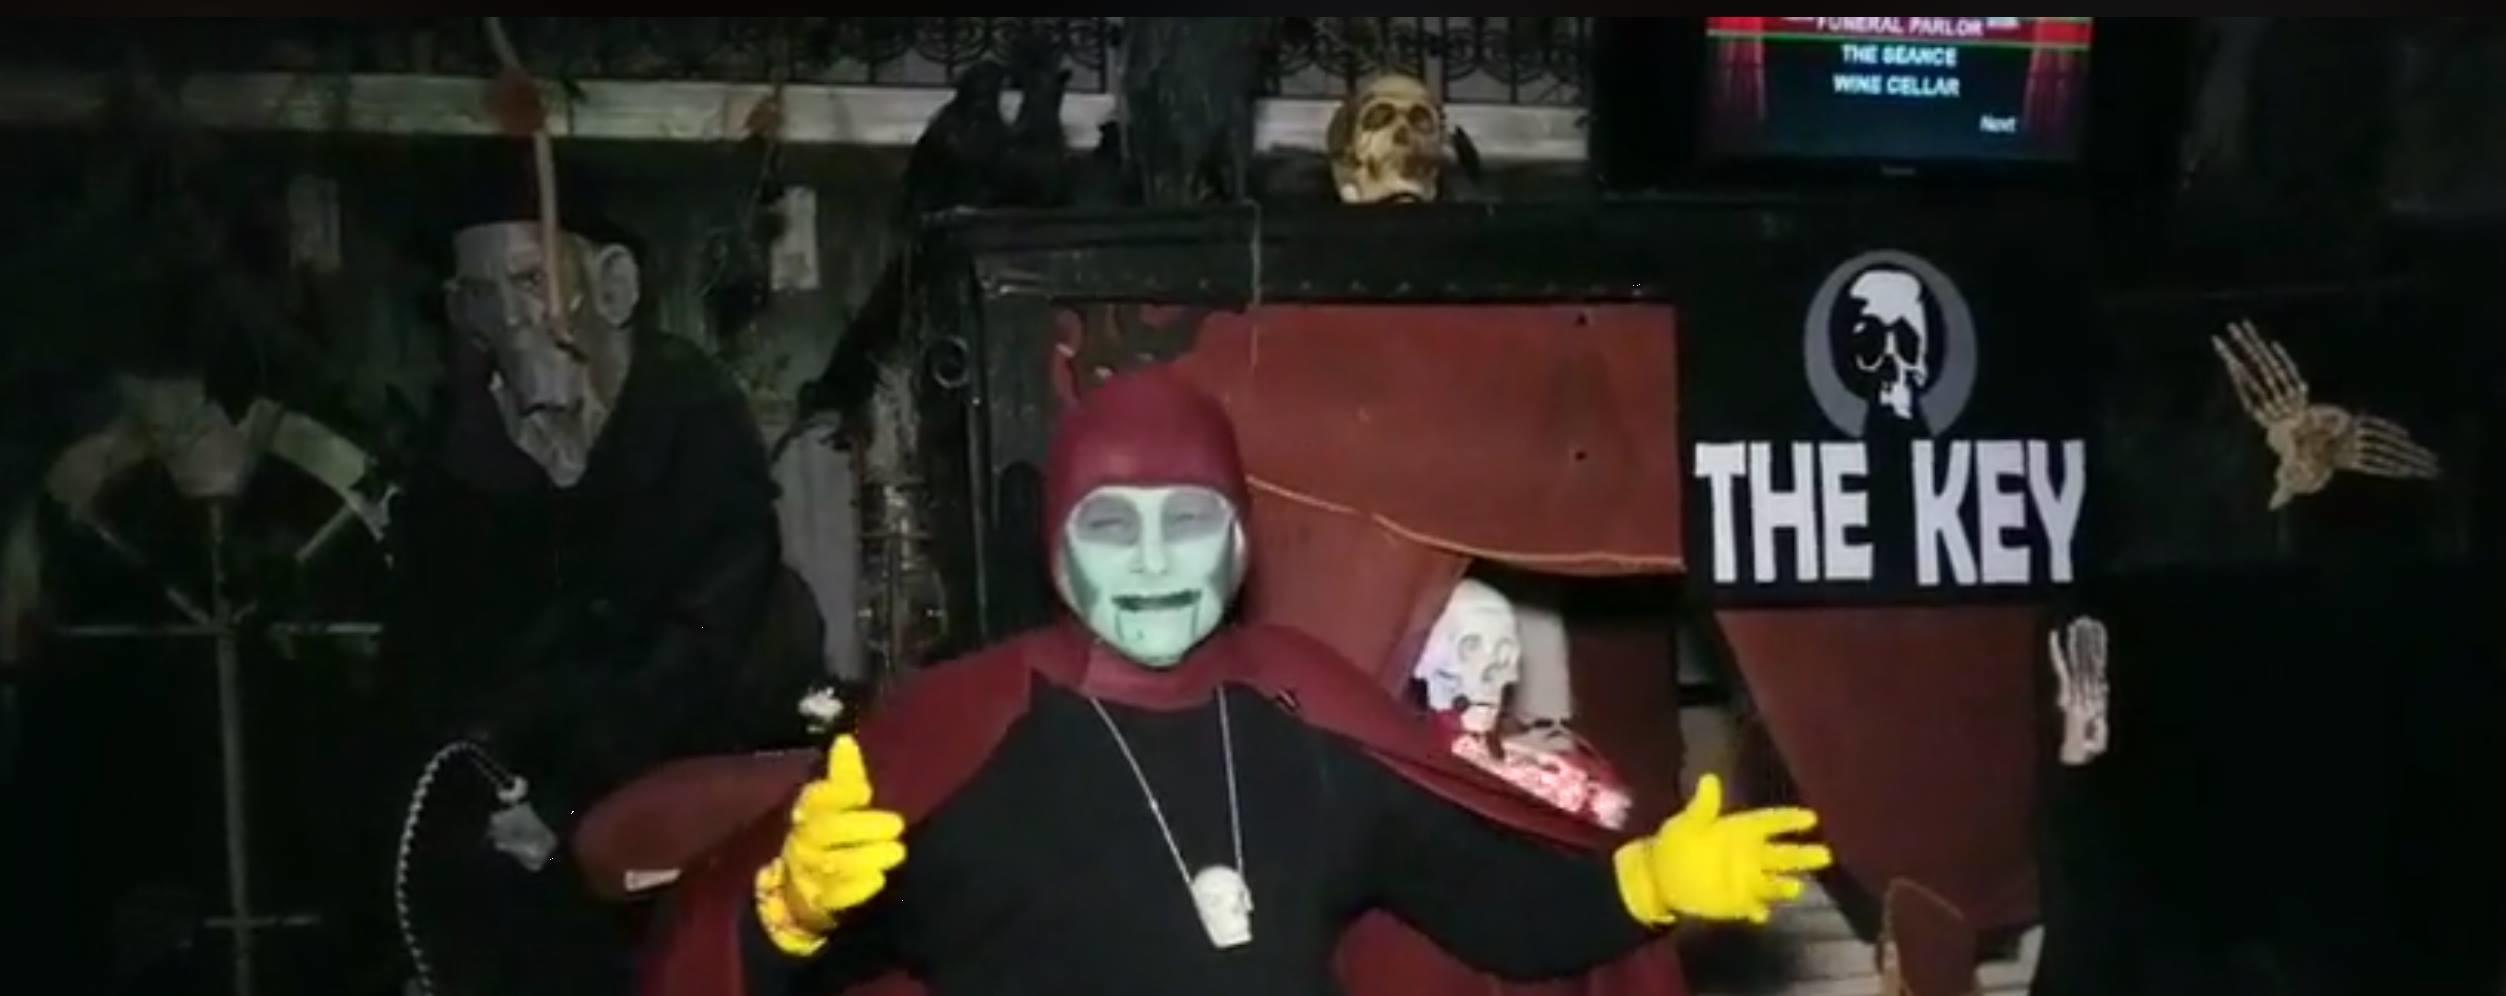 The Key Haunted Escape Room Reviews